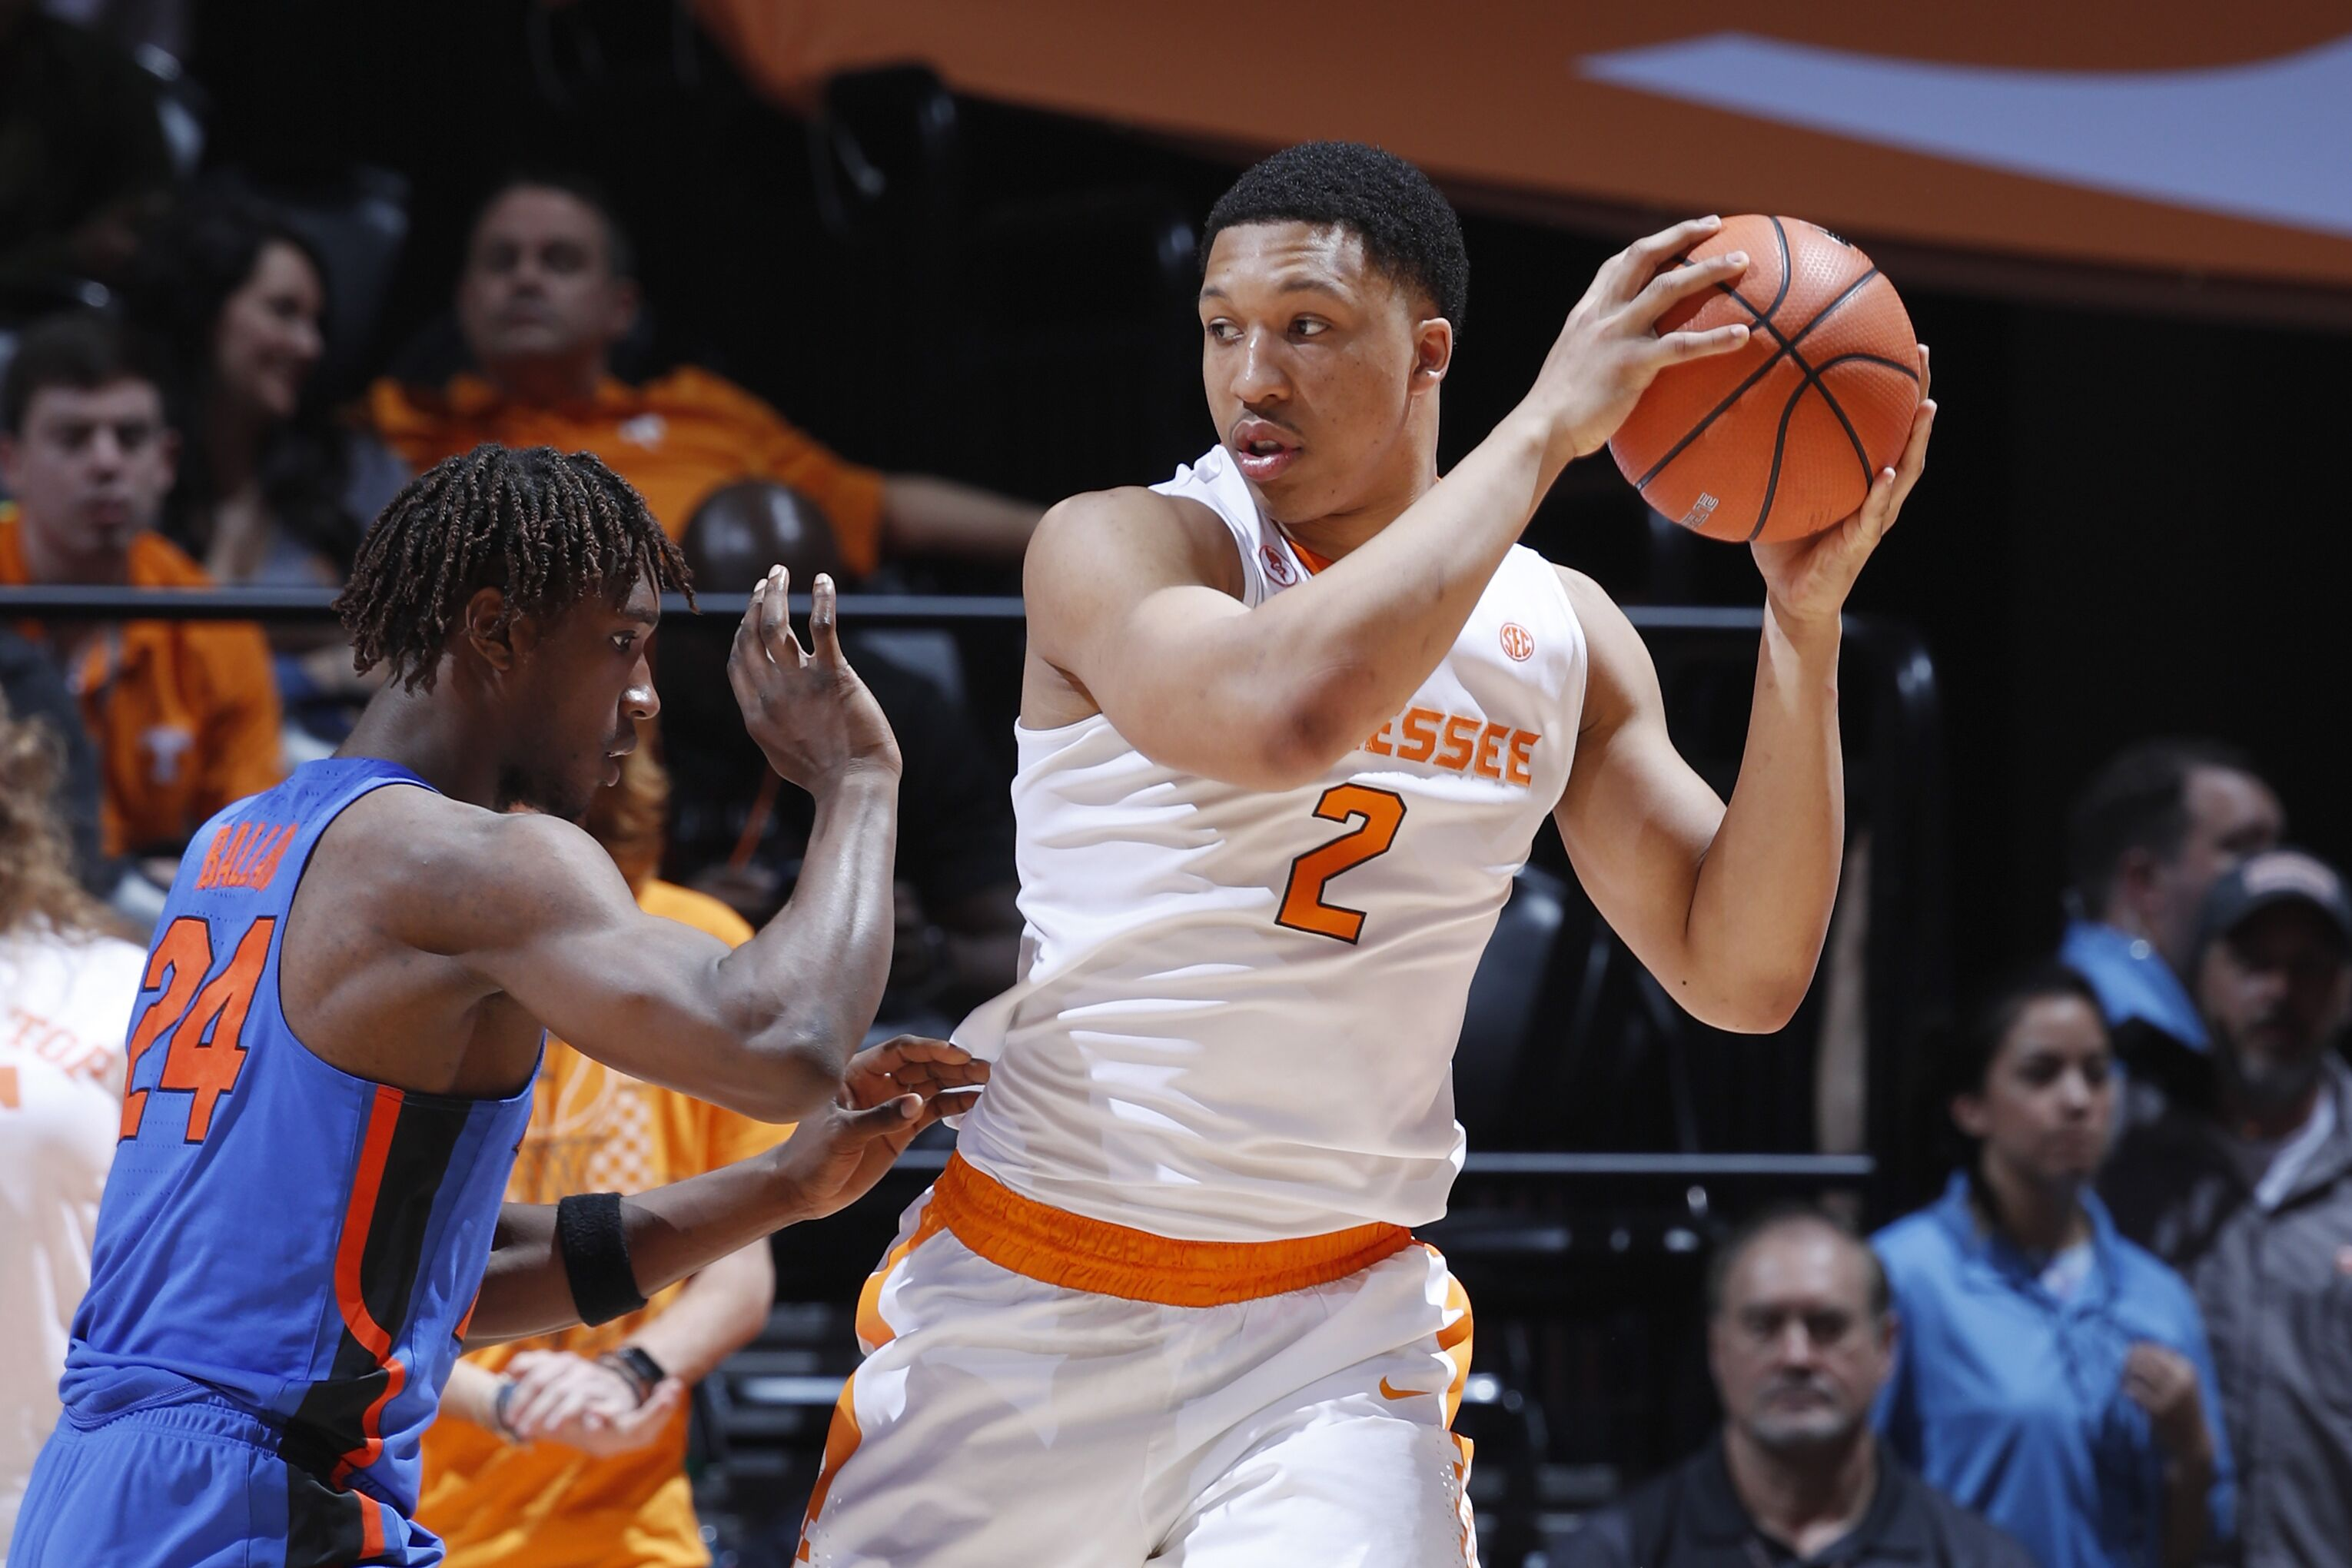 The latest Tweets from Tennessee Basketball VolHoops The official Twitter account of the University of Tennessee mens basketball program coached by Rick Barnes